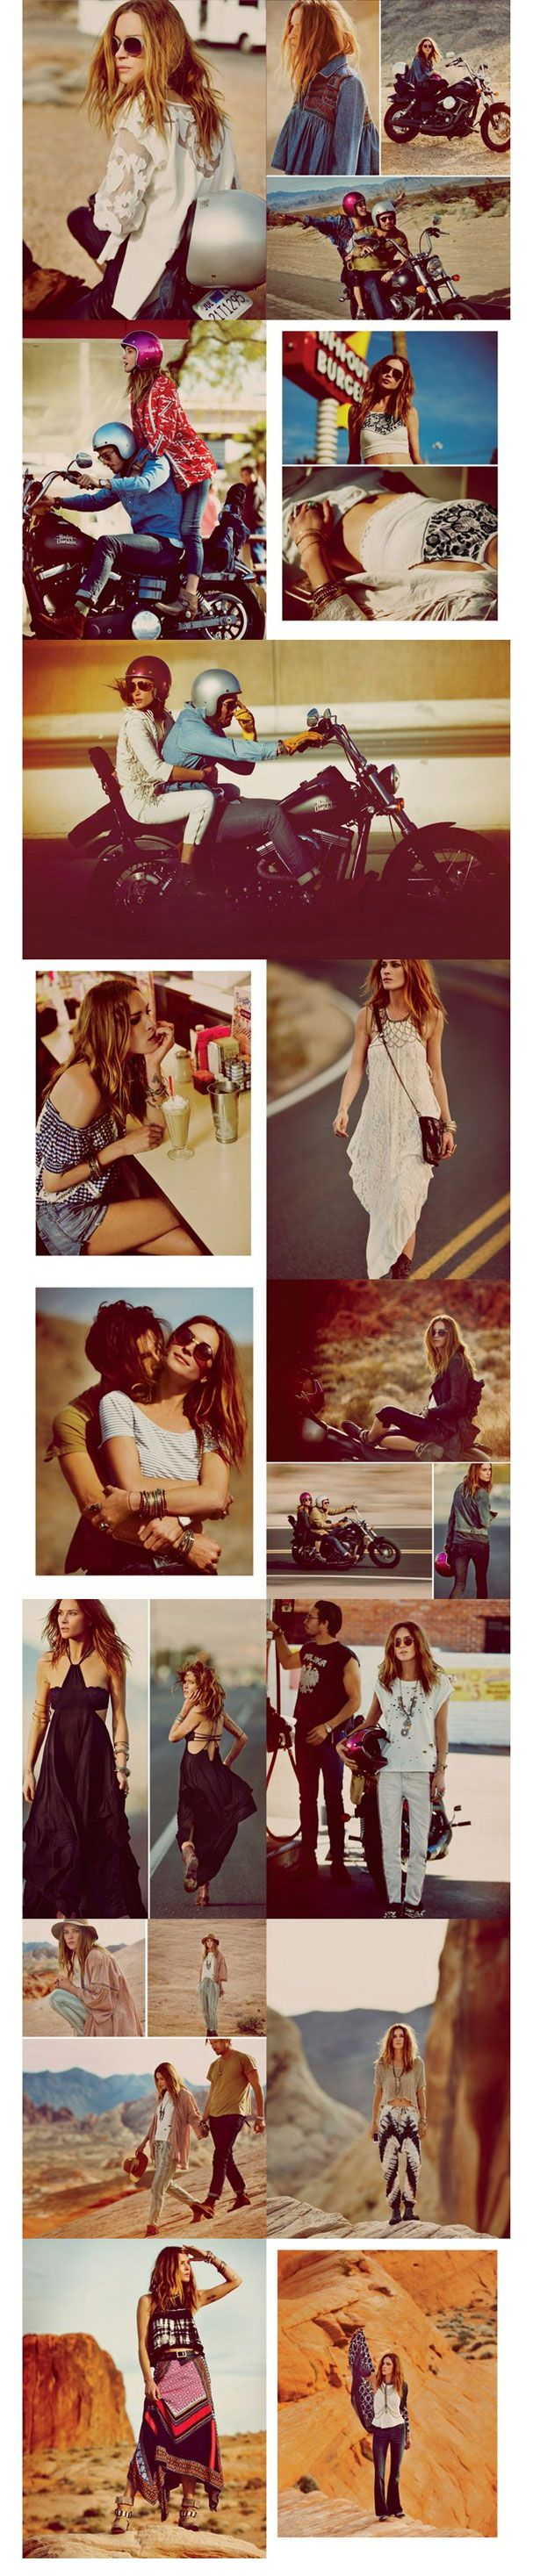 Erin Wasson for Free People March 2014